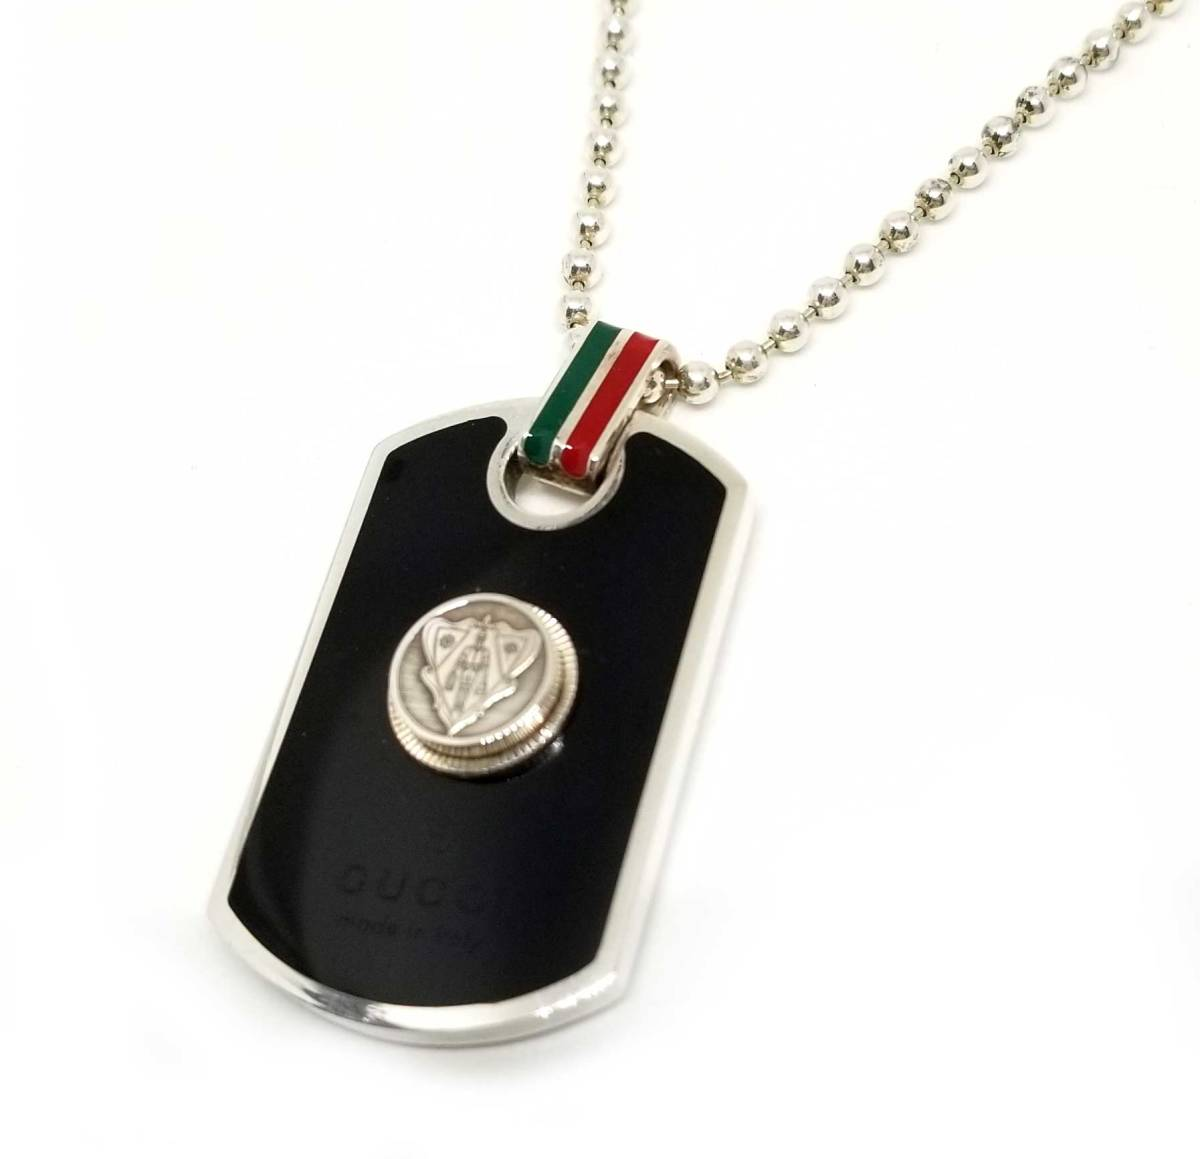 b54498bb3 Gucci necklace dog tag pendant crest 272860 black sherry color silver ball  chain men gap Dis ...